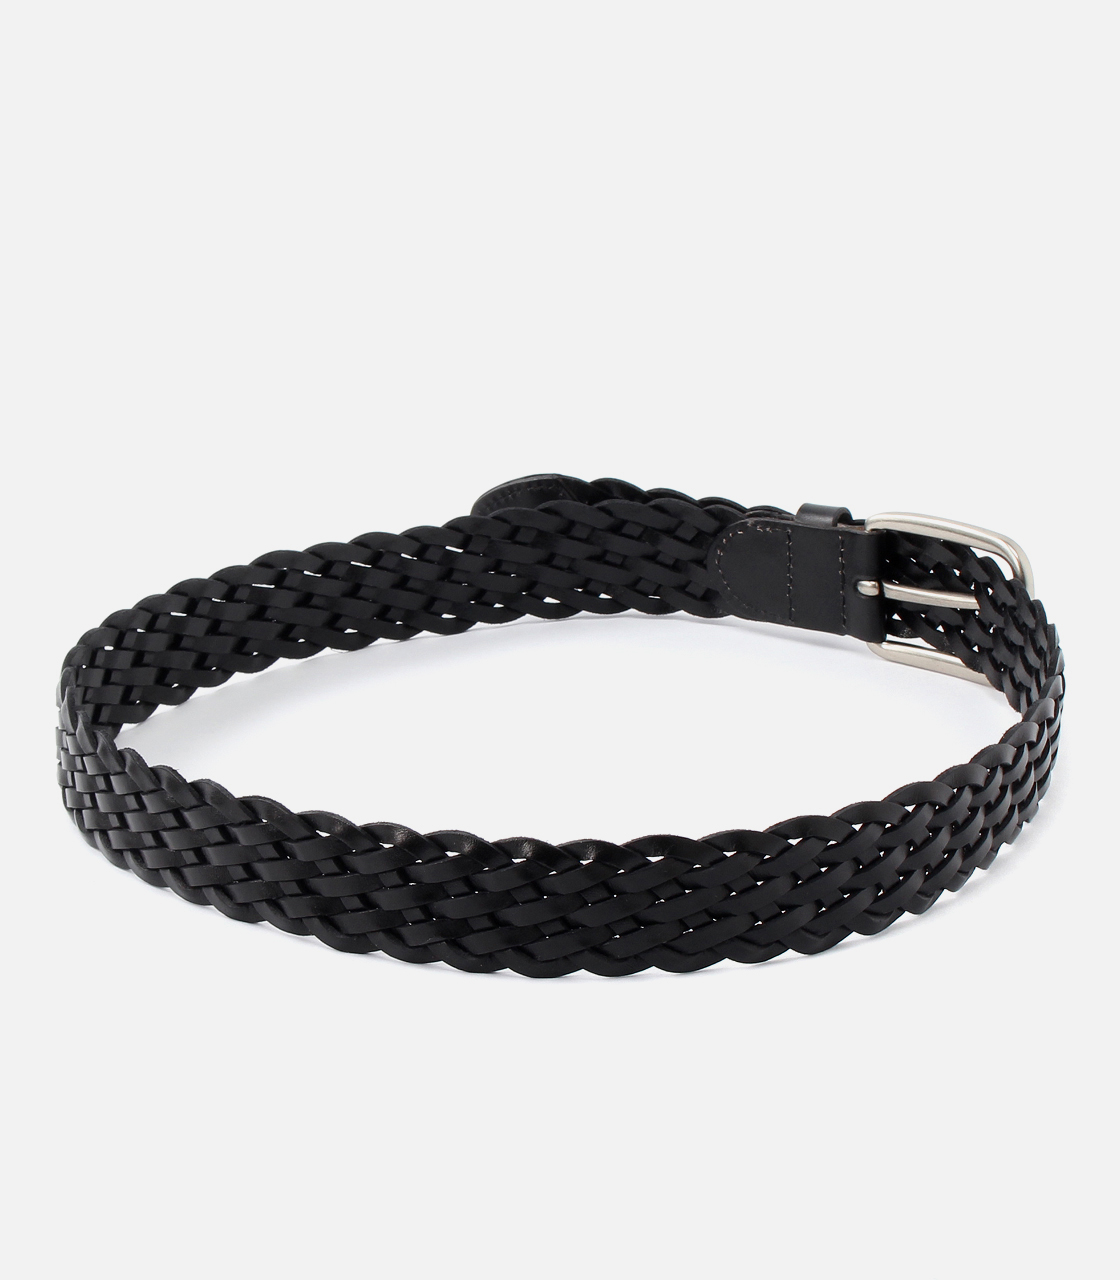 MESH LEATHER BELT 詳細画像 BLK 2